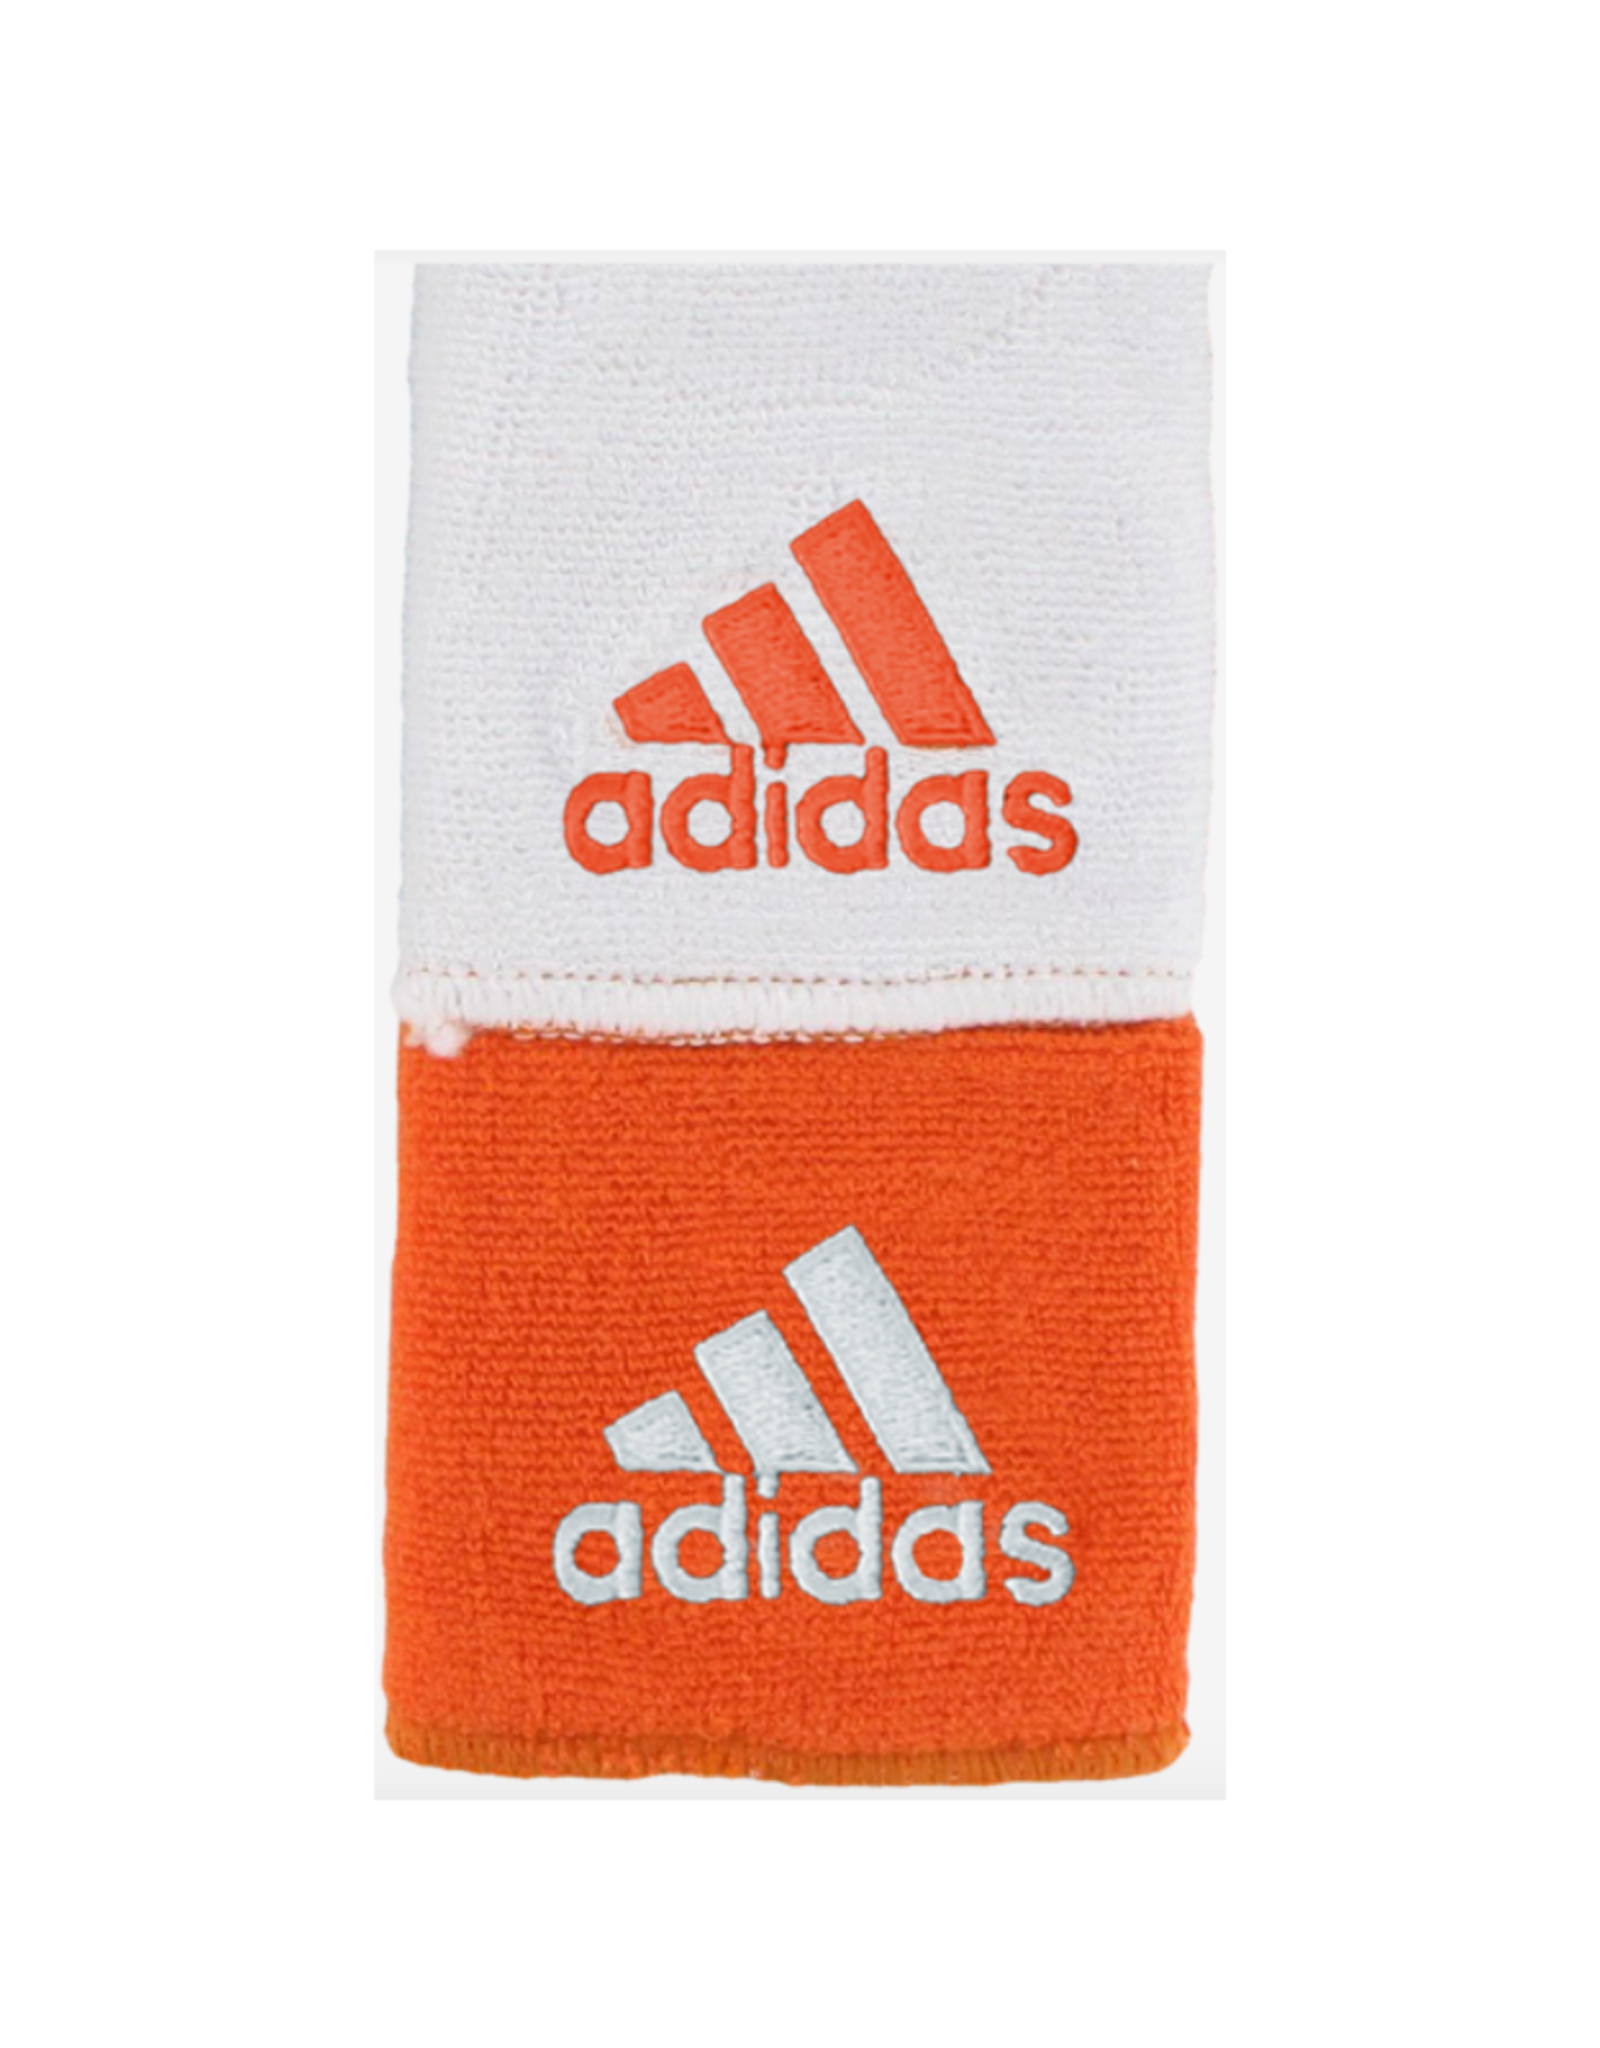 ADIDAS ADIDAS INTERVAL REVERSIBLE WRISTBAND COLLEGIATE ORANGE/WHITE